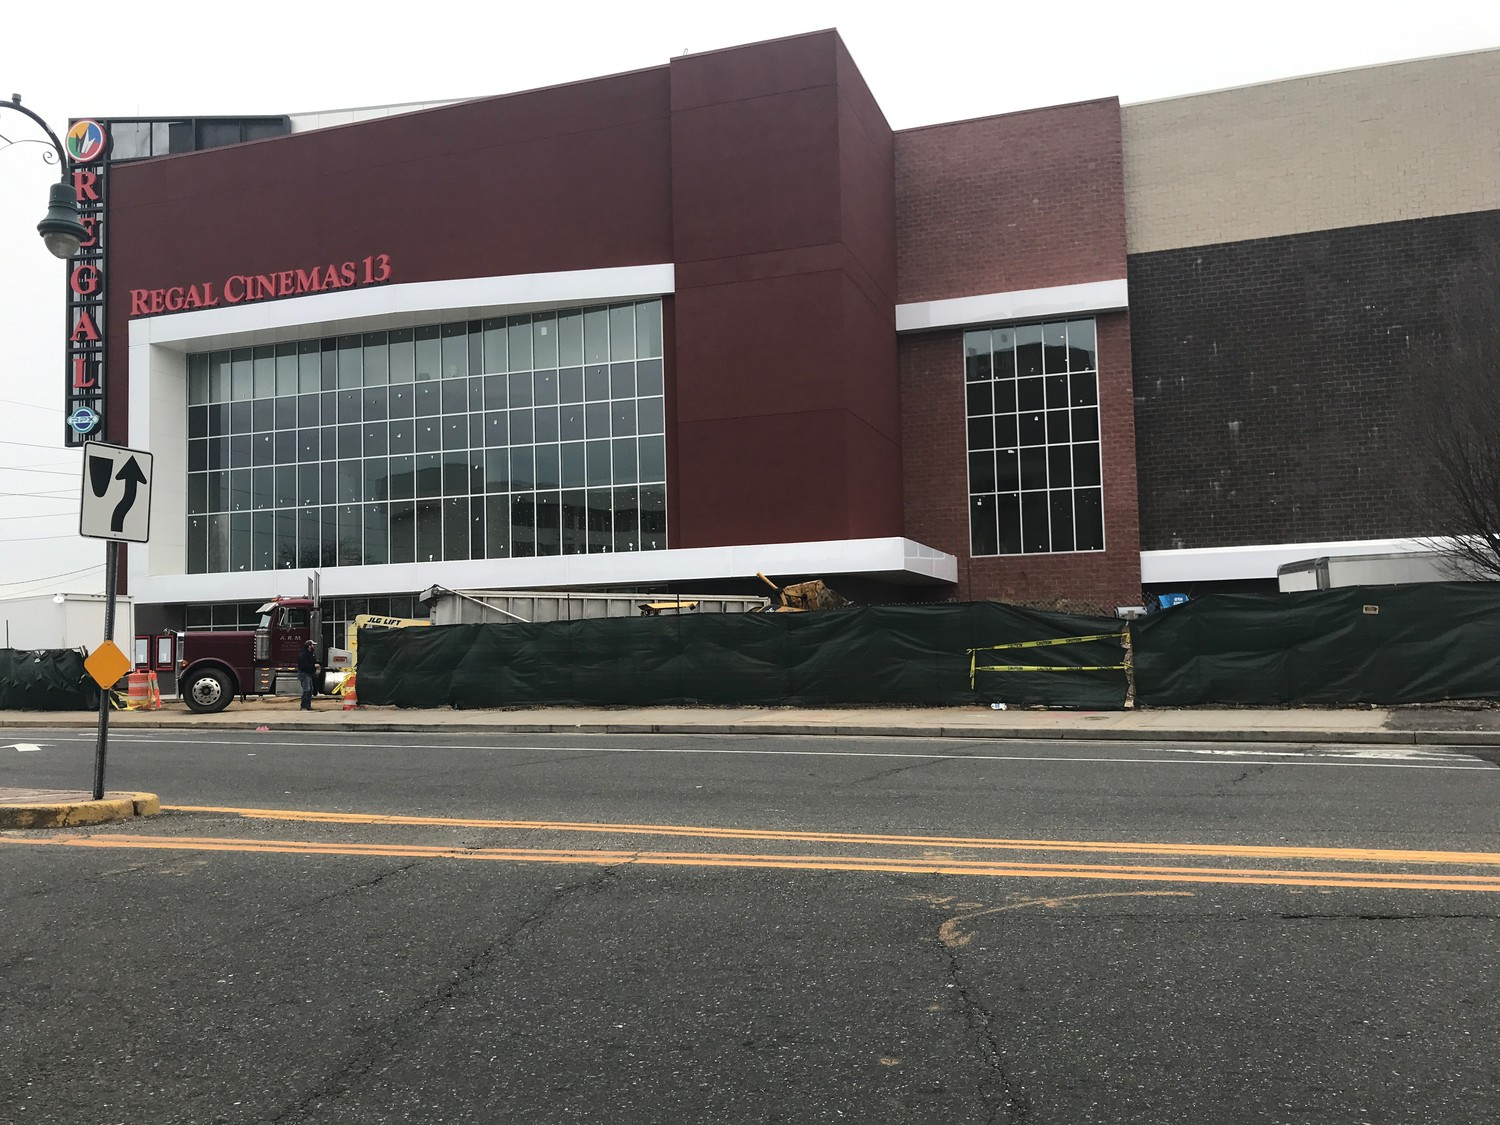 Issues with the standpipe system could push the opening of Lynbrook's Regal movie theater beyond the scheduled date of April 24.